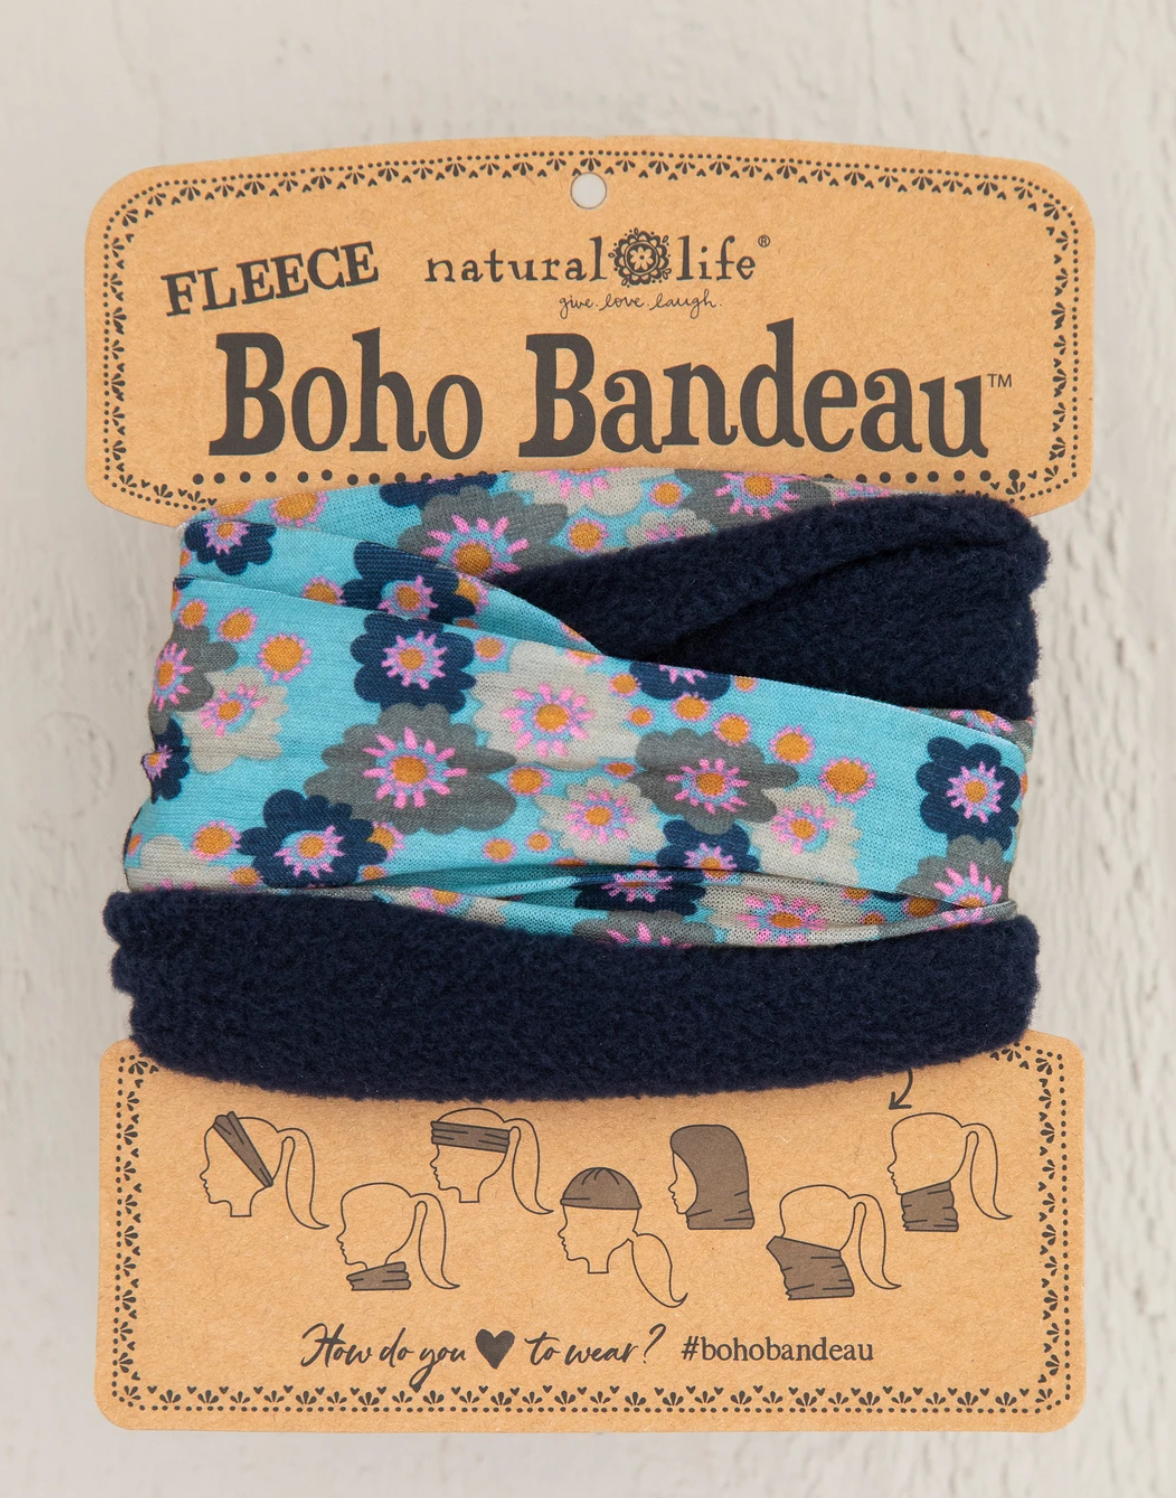 Natural Life Fleece Boho Bandeau-Aqua Floral